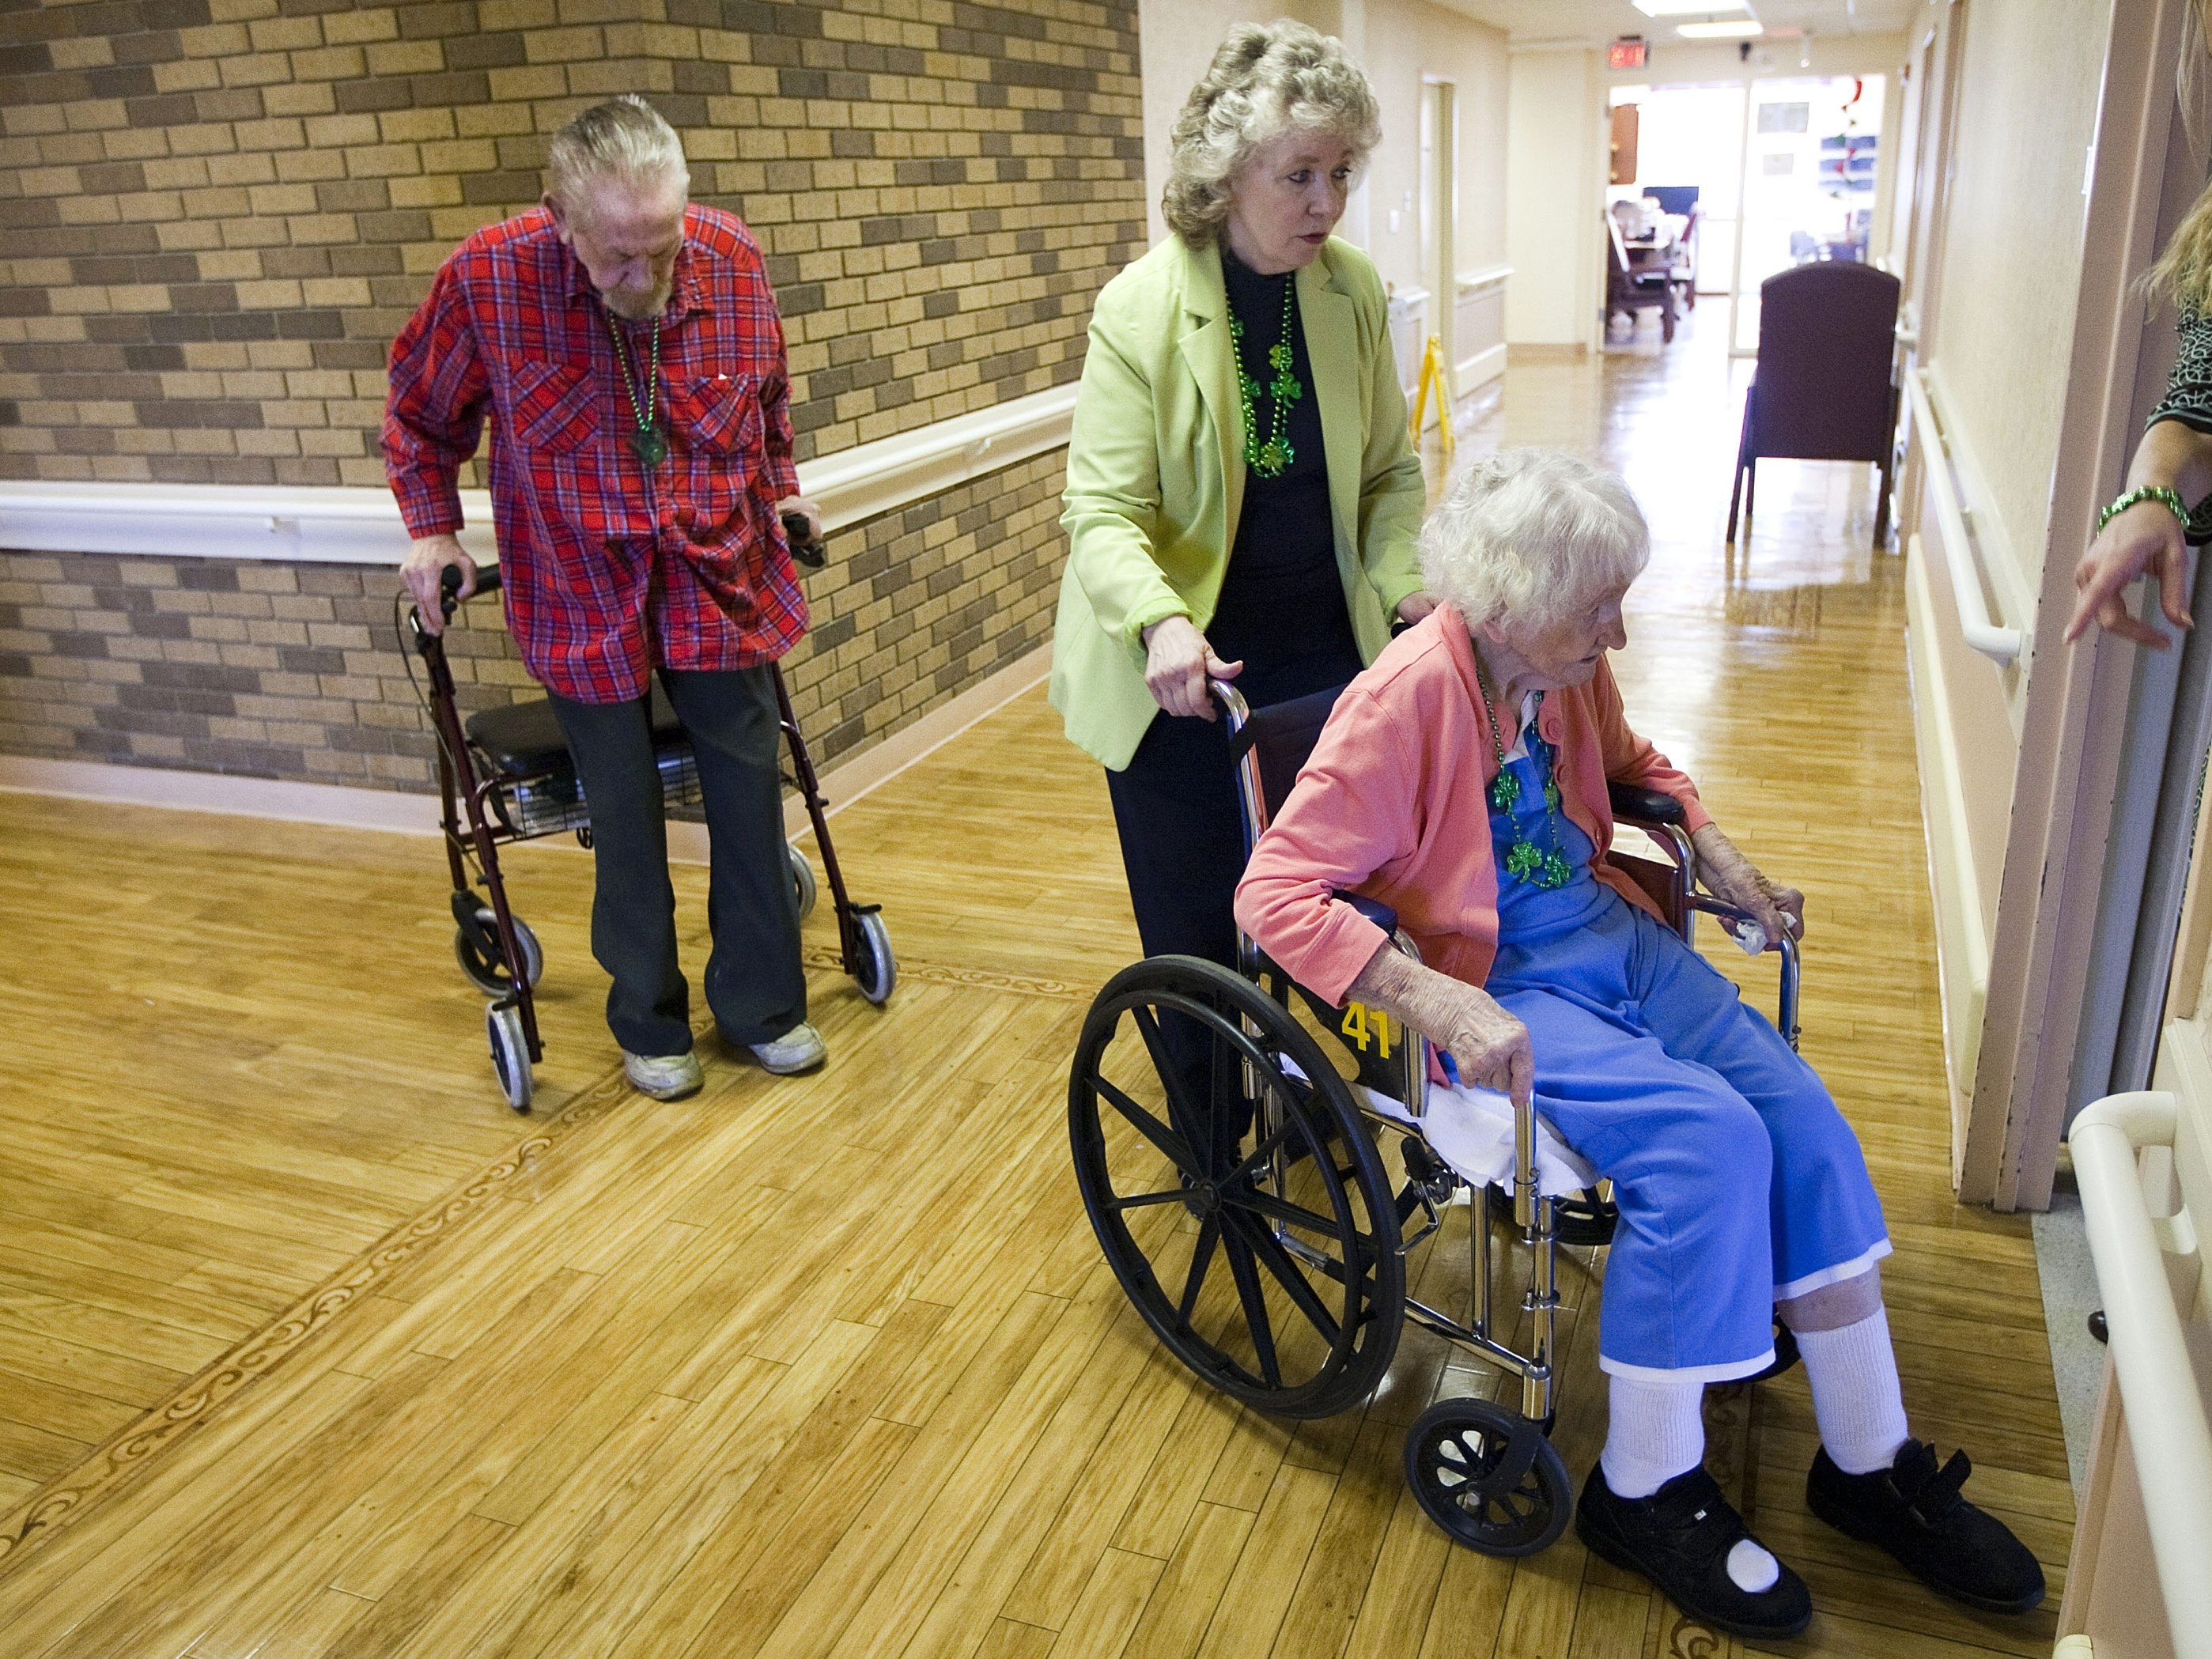 Marilyn Herrin, 68, center, assists her mother, Mary Herrin, 96, in Dallas, Texas. As the population ages, a shortage of caregivers for the elderly looms.